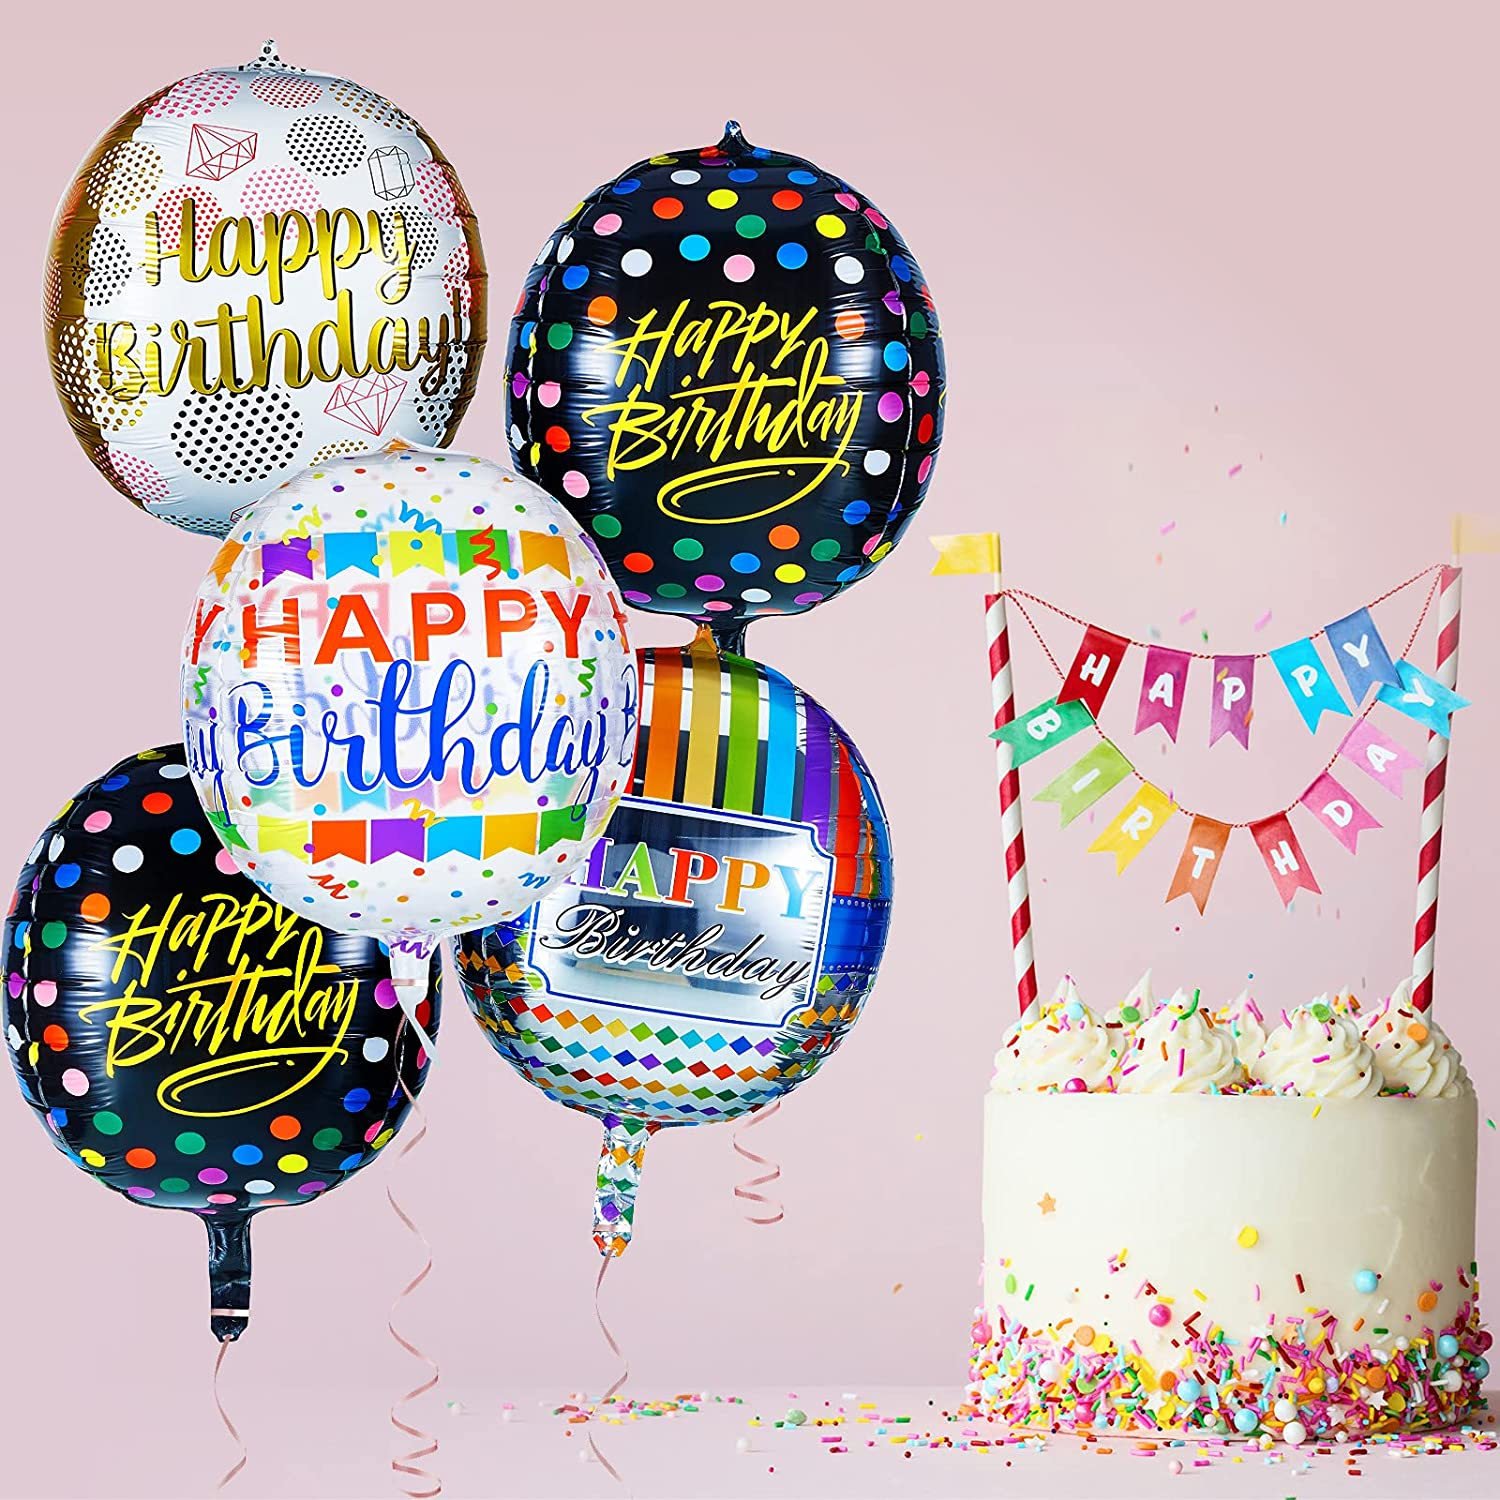 Vinsot 16 Pieces 4D Happy Birthday Foil Balloons Large Round Shaped Mylar Balloons 22 Inch Colorful Aluminum Foil Balloons Jumbo Balloons for Boys Girls Birthday Party Decoration Supply 8 Styles